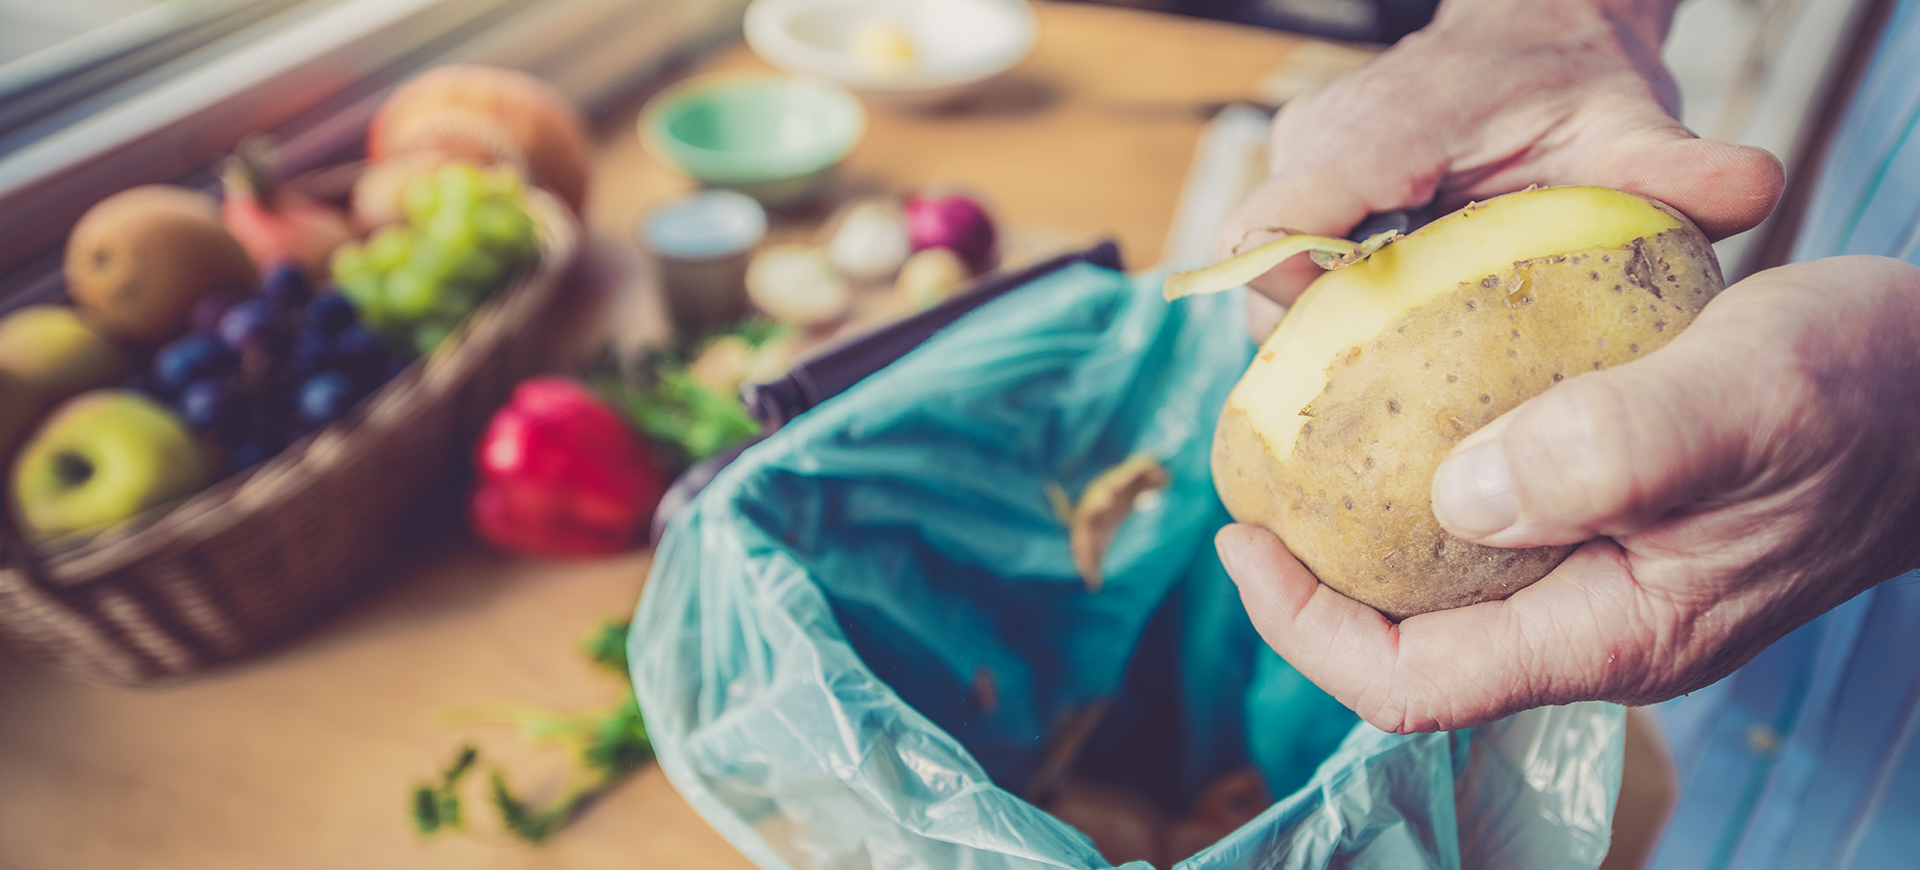 5 Tips to Reduce Food Waste Blog Post